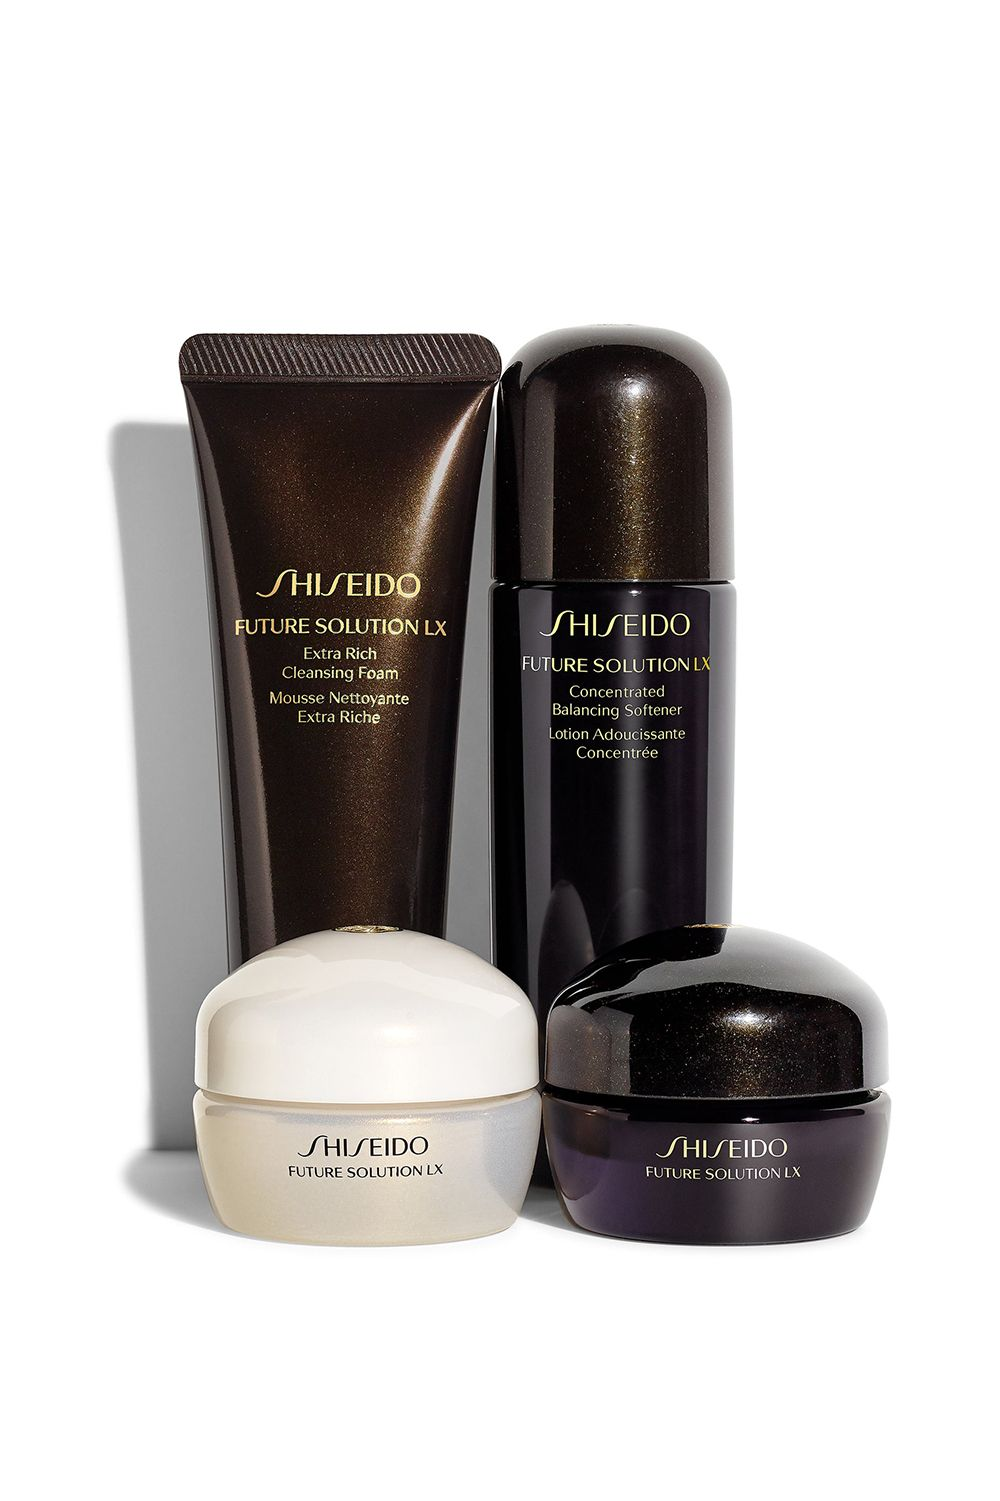 This Skincare Travel Set Shiseido Future Solution LX Travel Collection Spoil your skin with Shiseido's best-selling anti-aging products when you're on the go. Regular price: $145 Sale price: $102 SHOP IT